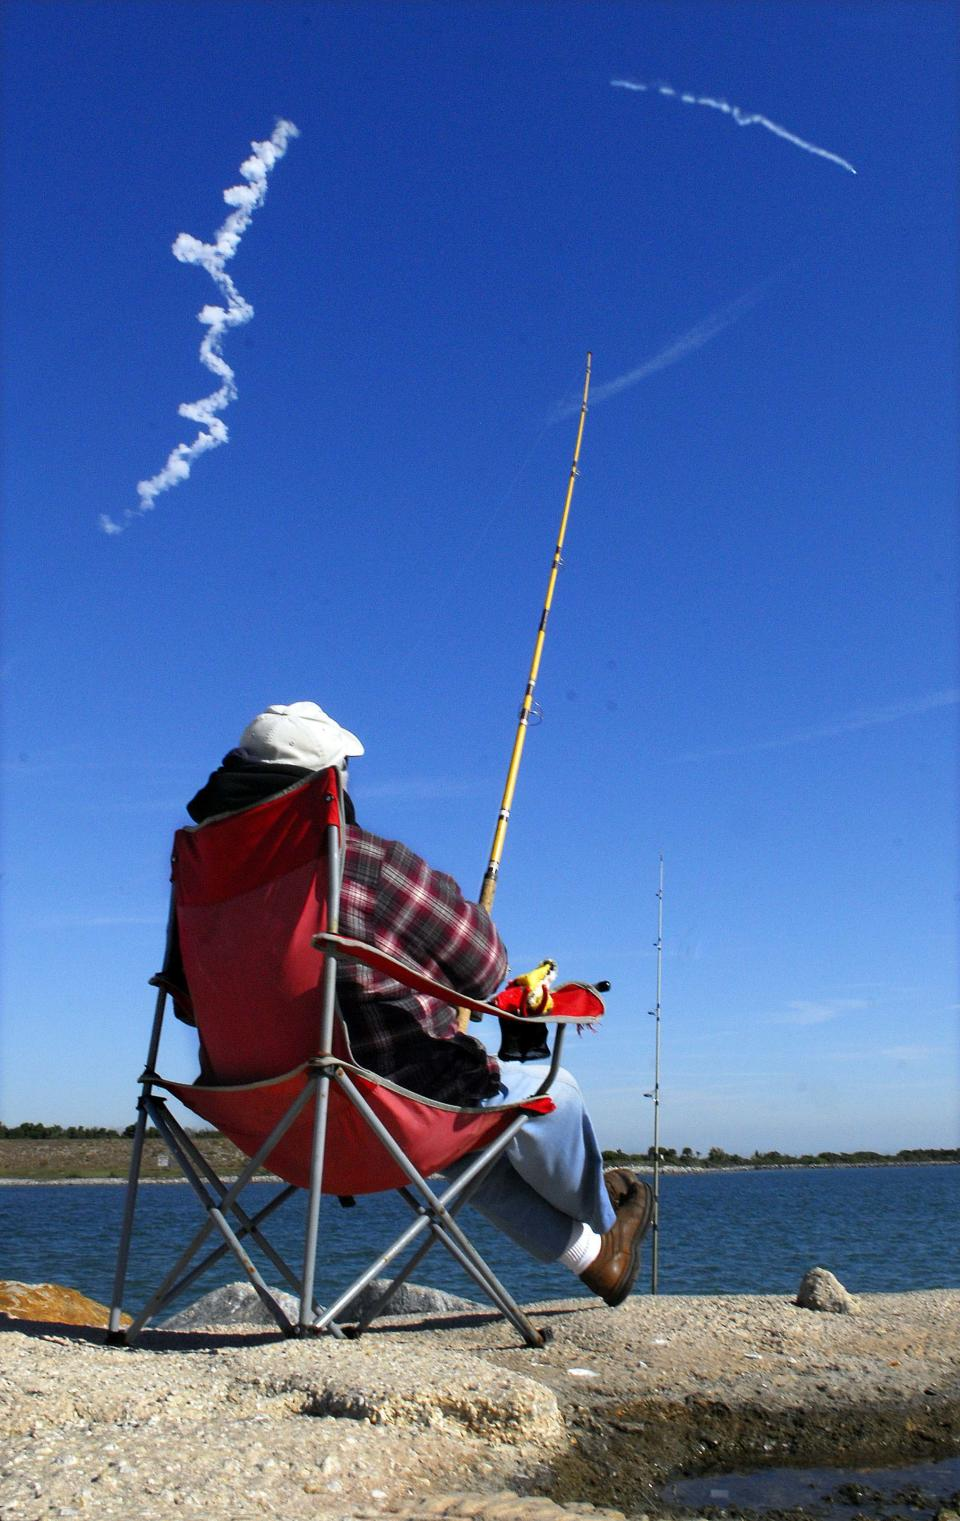 Frank Harrigan of Cocoa, Fla., does some fishing Wednesday morning Dec. 8, 2010 at Jetty Park in Cape Canaveral as the SpaceX Falcon 9 rocket is launched from Cape Canaveral Air Force Station for its first NASA demonstration flight. (AP Photo/ Florida Today, Craig Rubadoux)